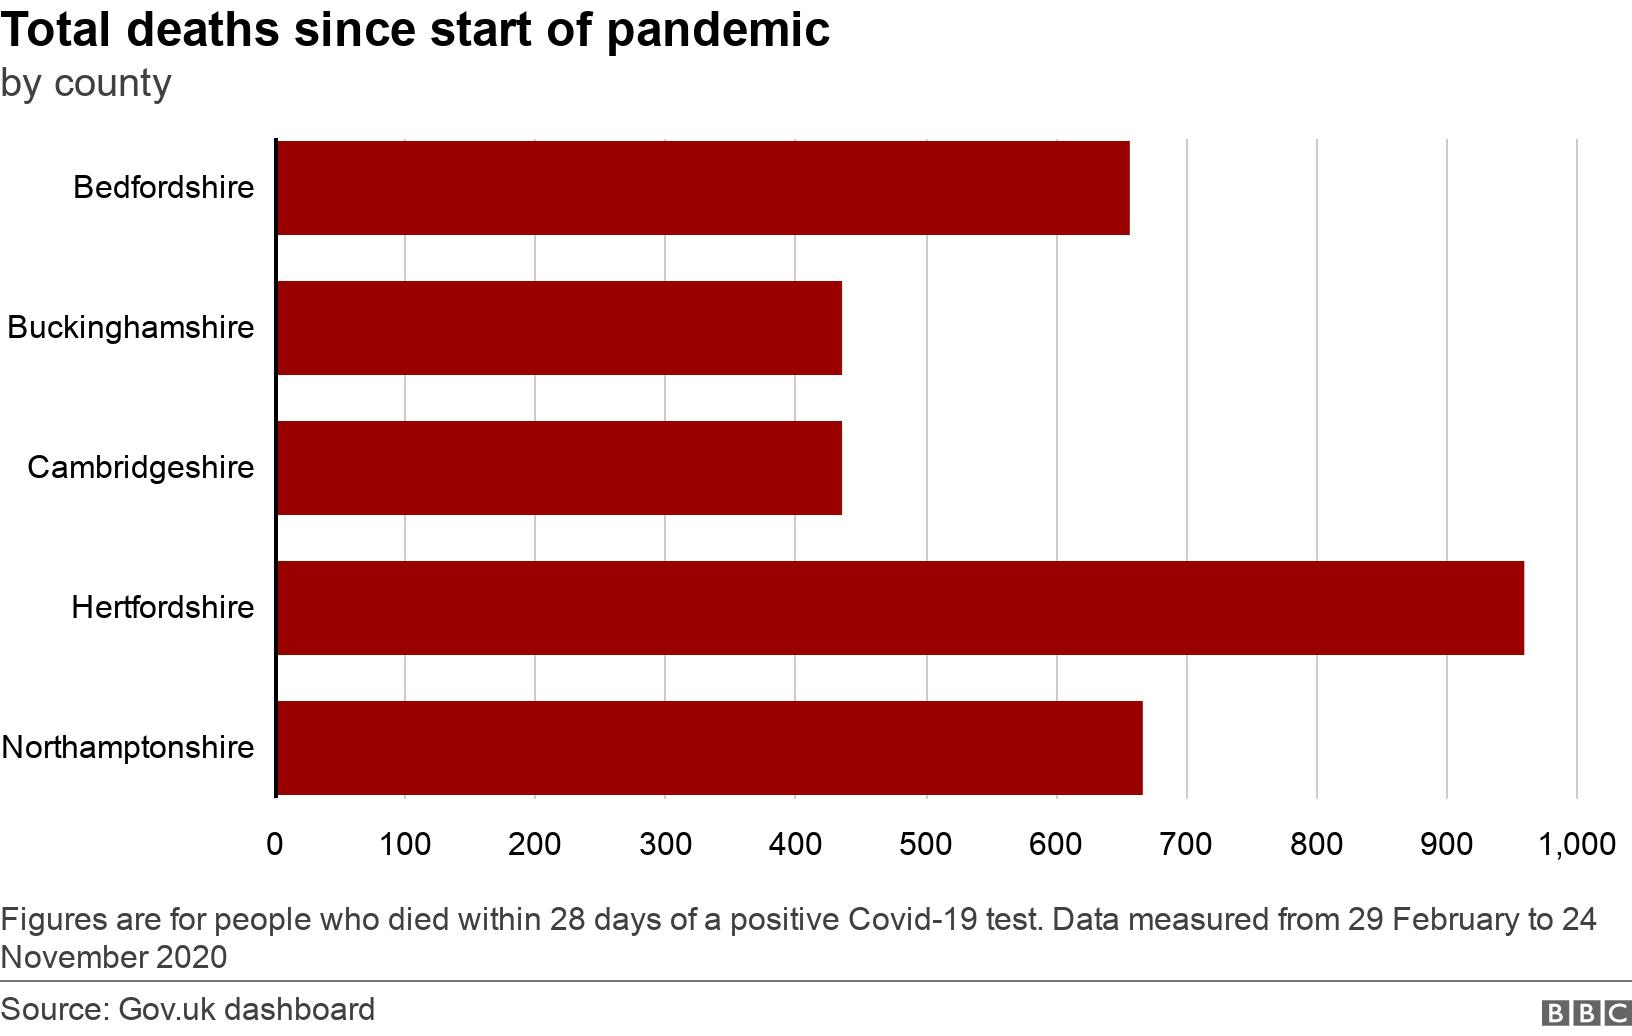 Total  deaths since start of pandemic. by county.  Figures are for people who died within 28 days of a positive Covid-19 test. Data measured from 29 February to 24 November 2020.